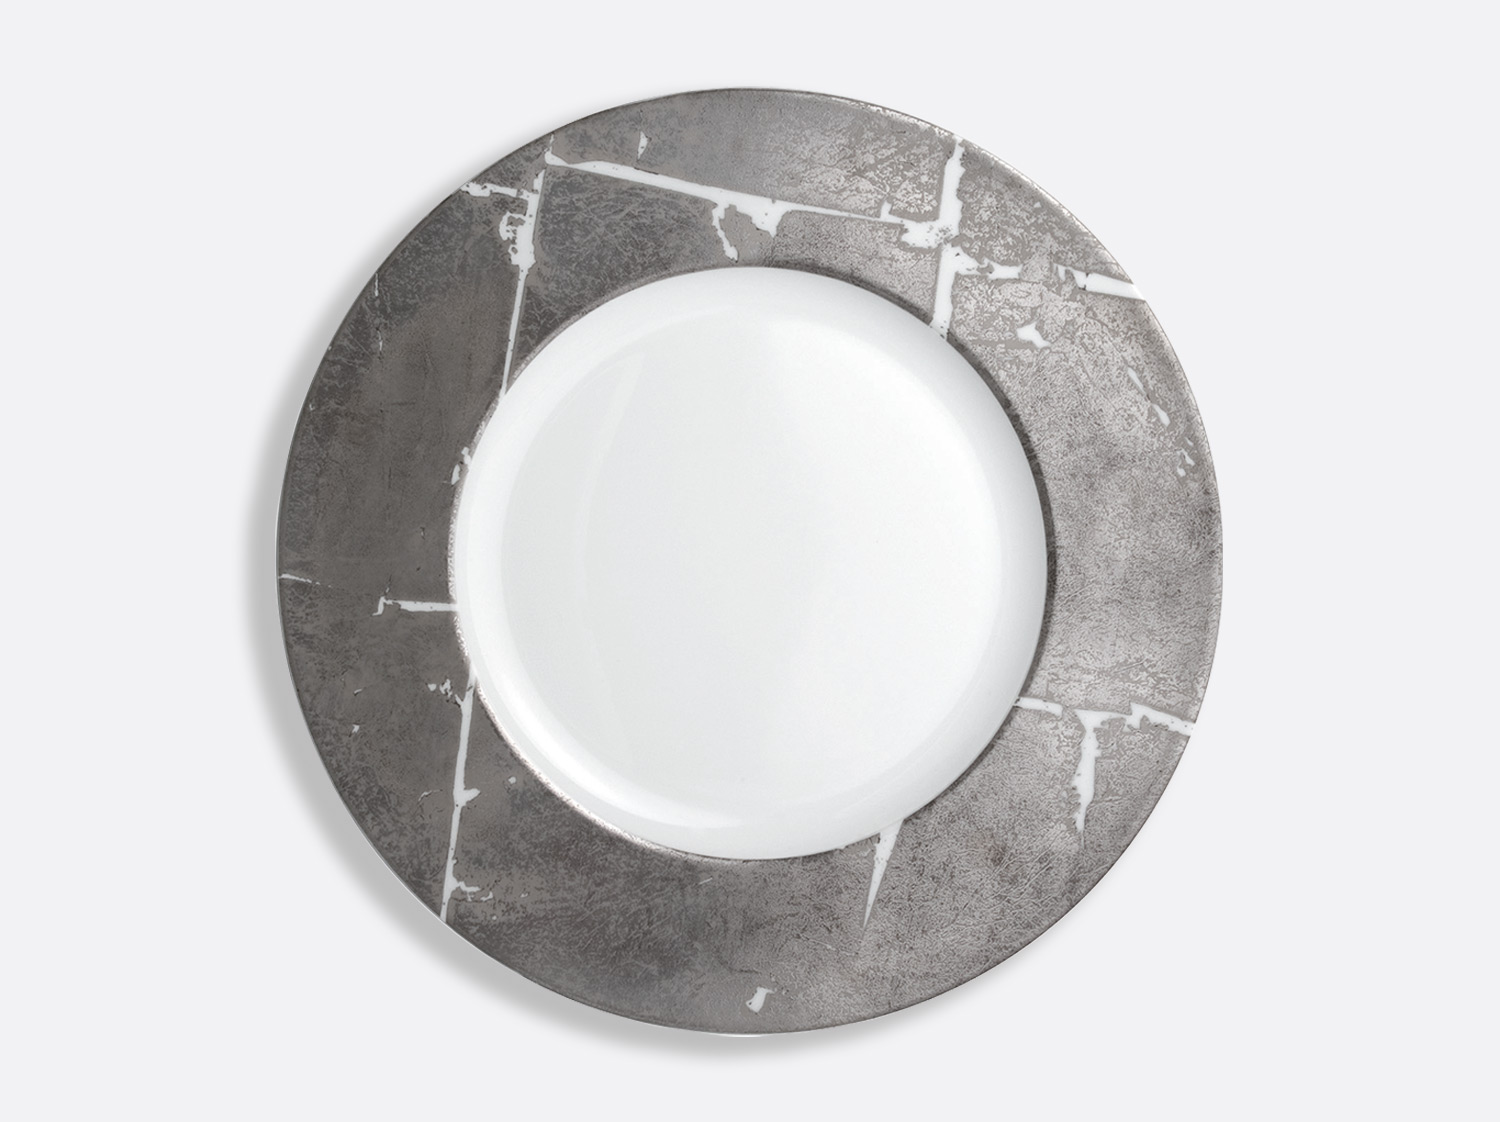 China Shogun plate 31.5 cm of the collection Silver leaf | Bernardaud